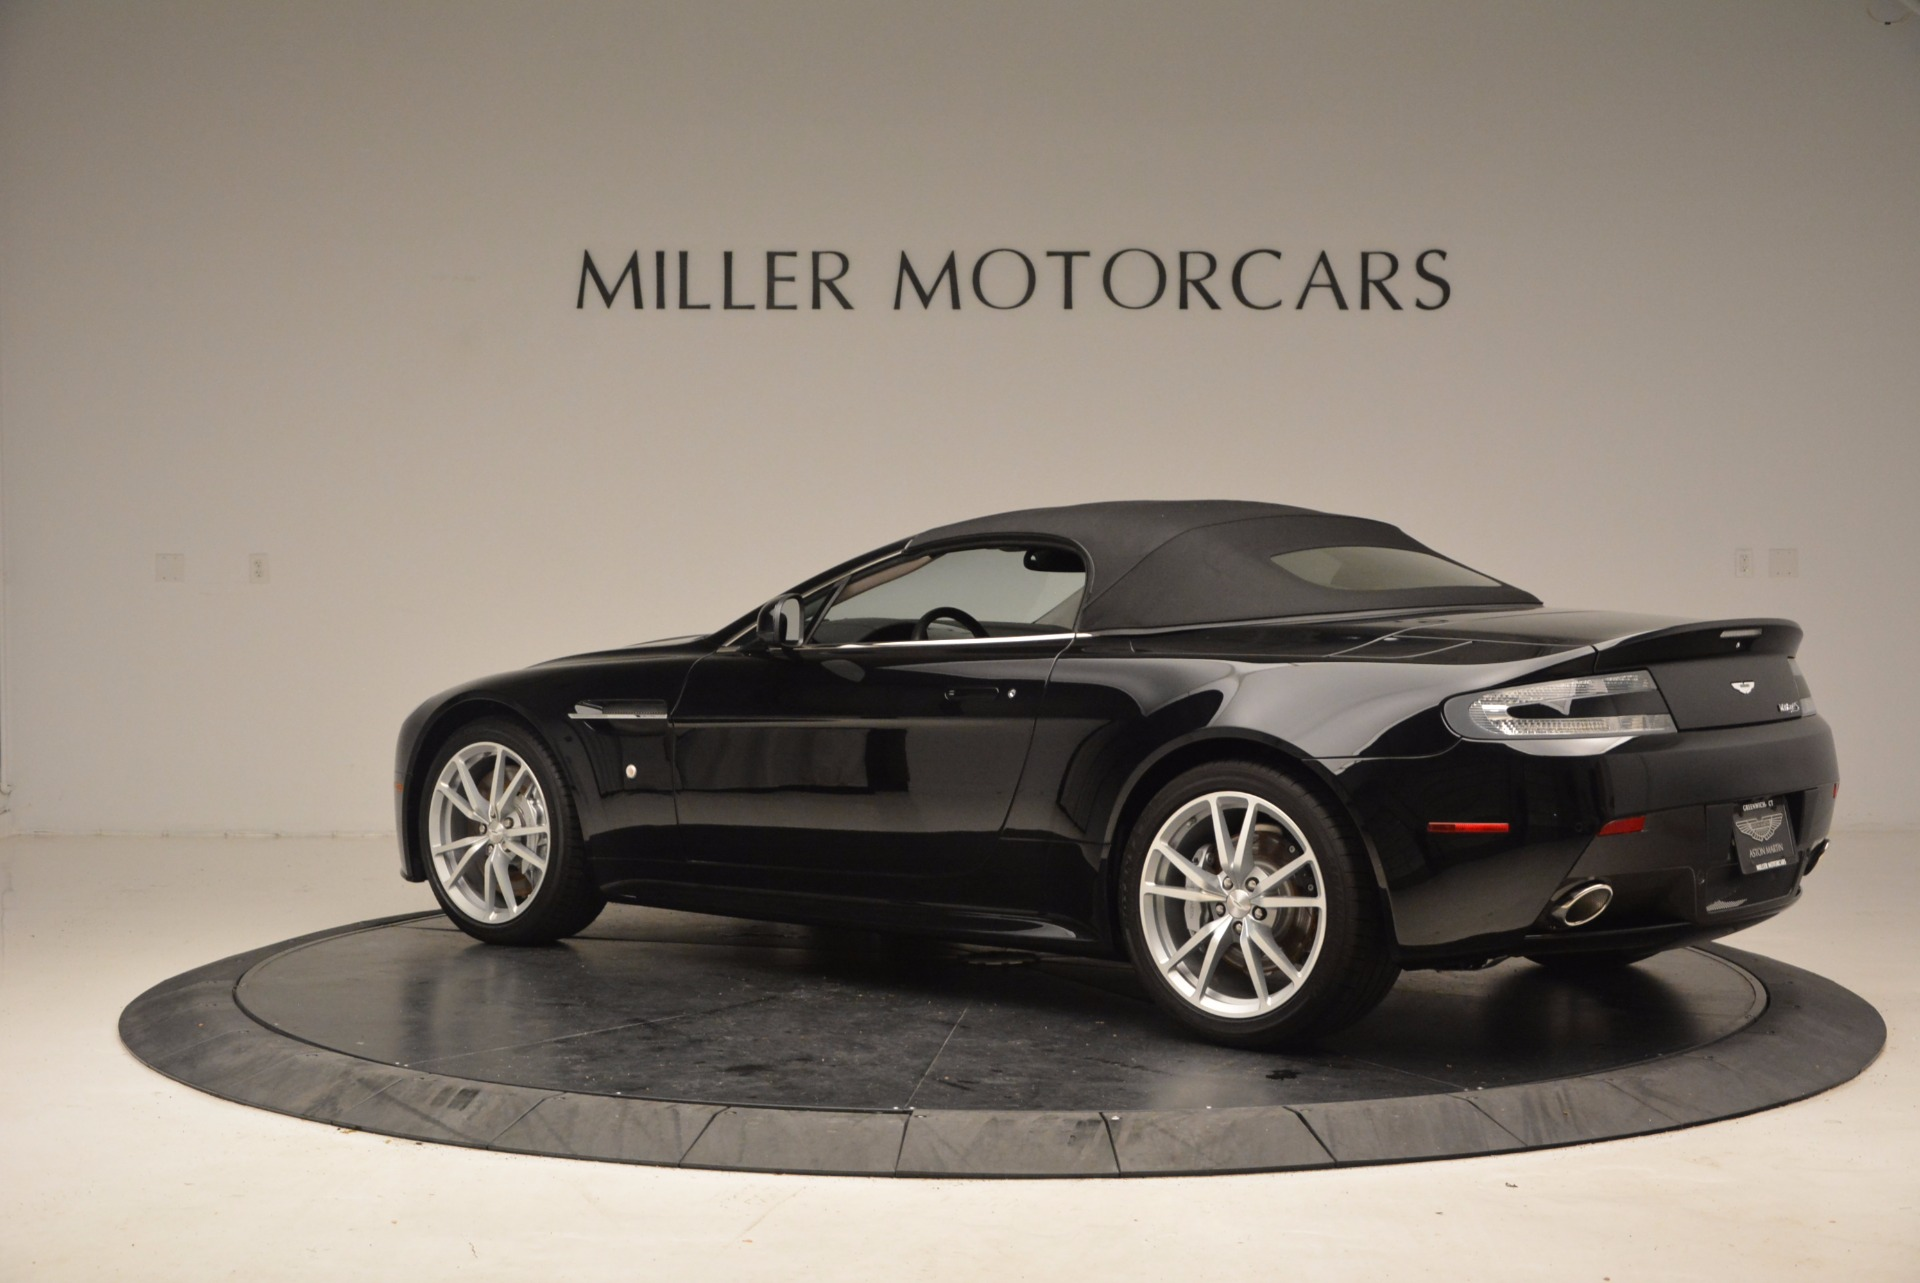 New 2016 Aston Martin V8 Vantage Roadster For Sale In Greenwich, CT 1546_p16